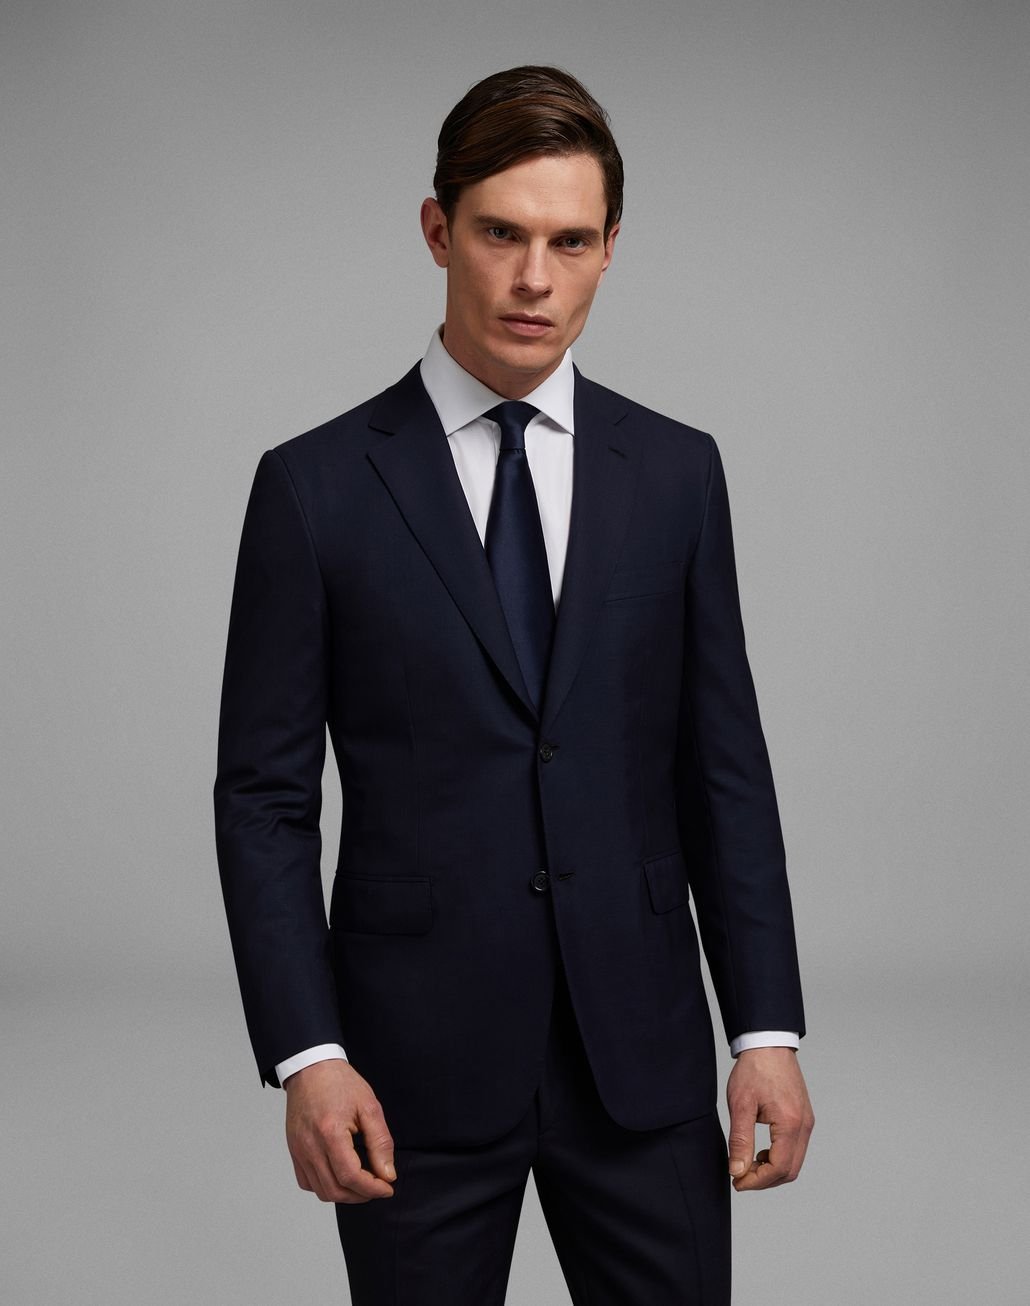 BRIONI 'Essential' Navy Blue Ravello Jacket Jackets Man r